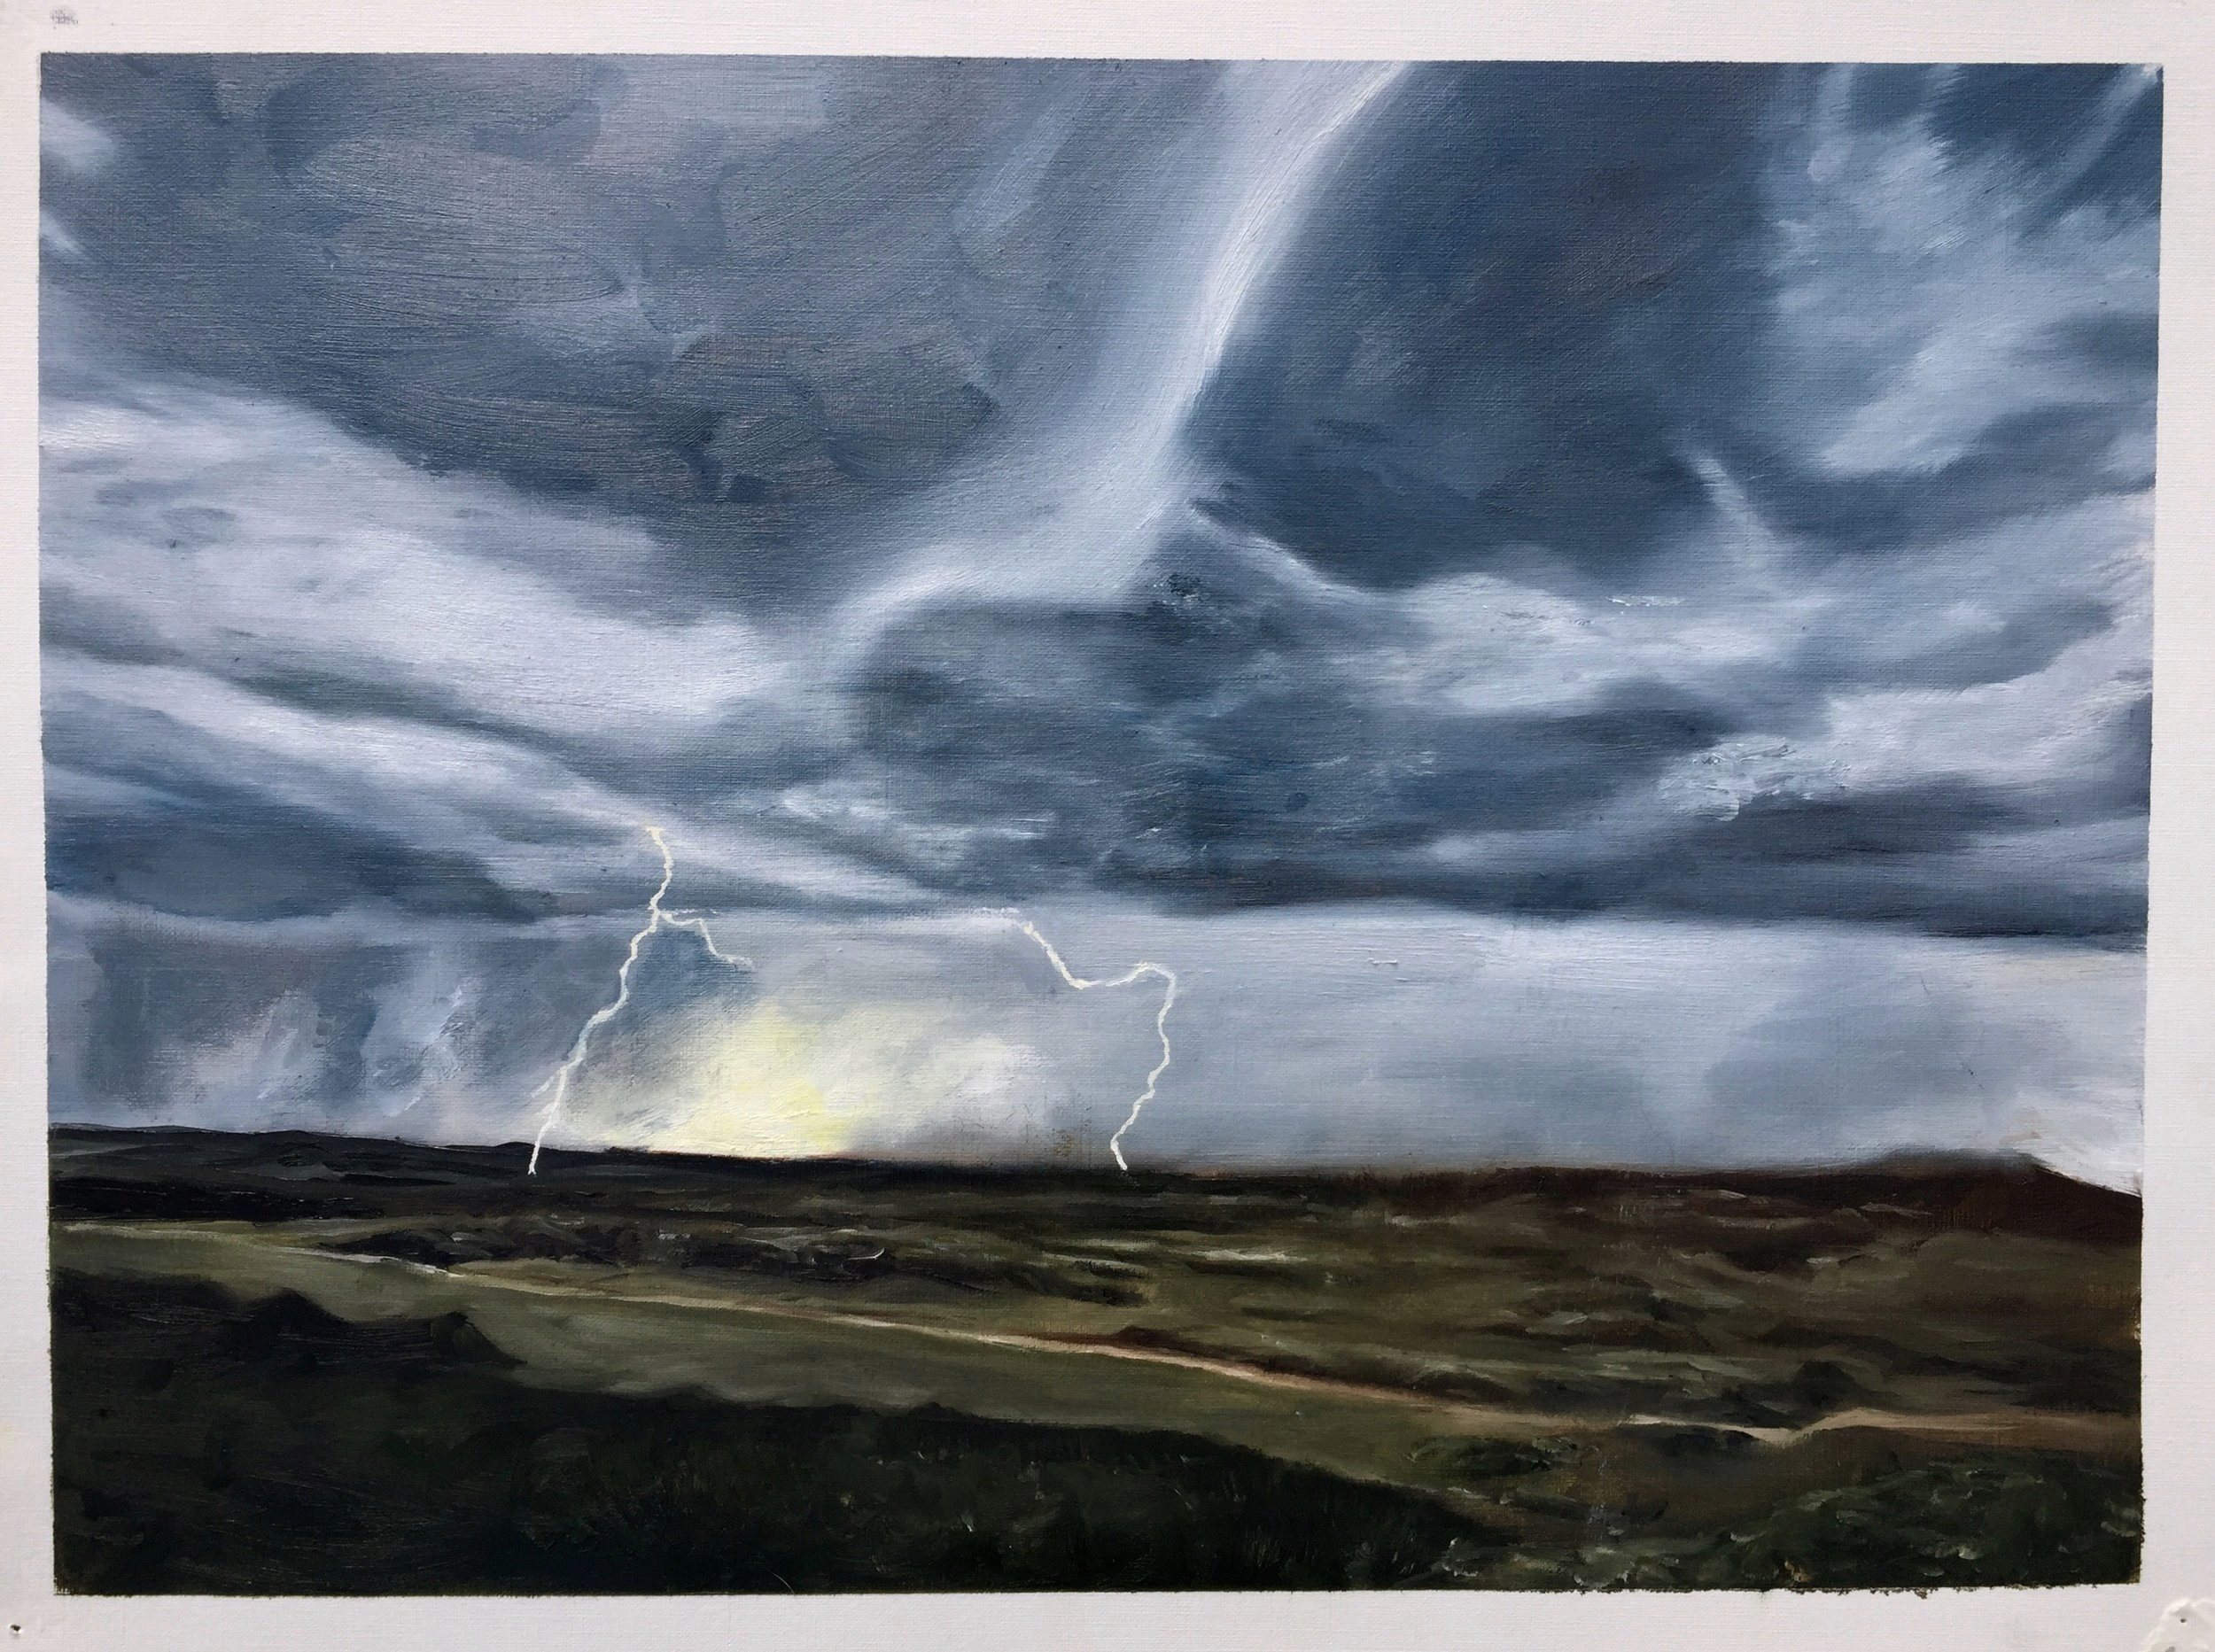 lightning scape    oil on canvas paper 20in x 15in    2019